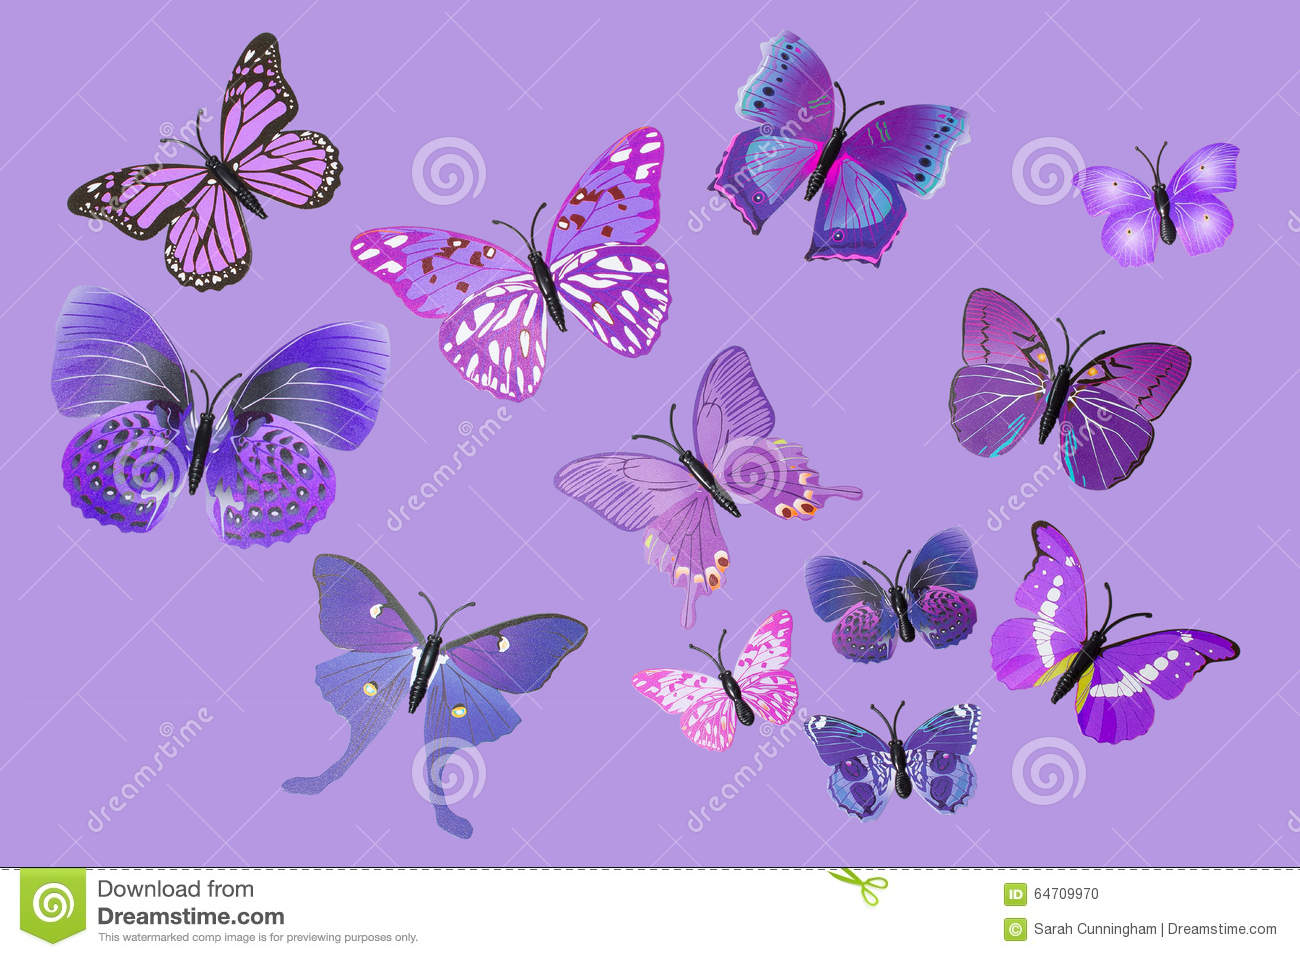 Fantasy butterflies purple - photo#19